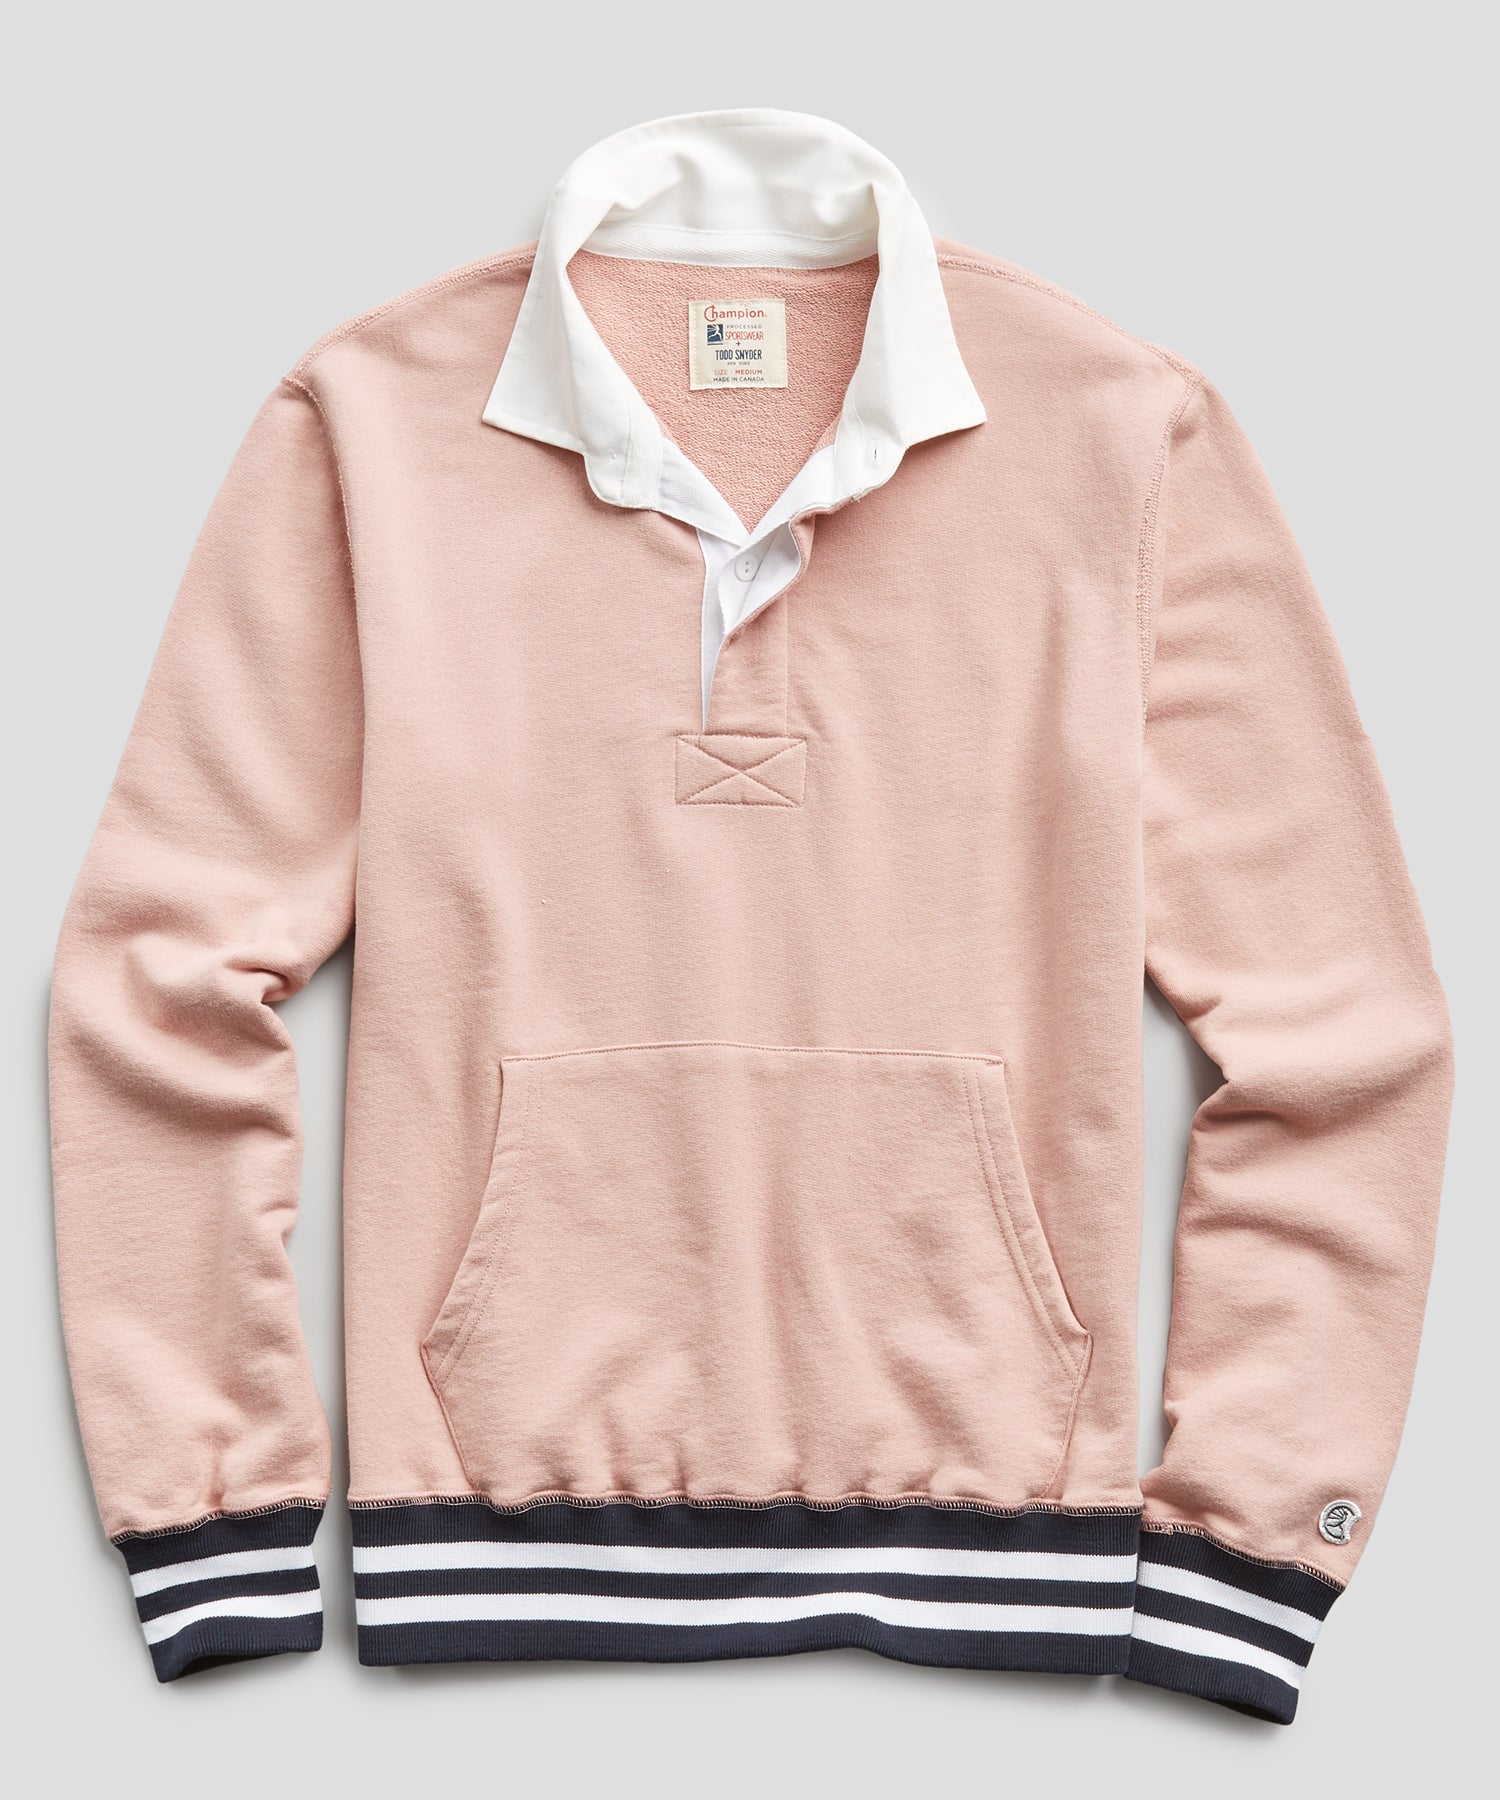 Rugby Sweatshirt in Desert Rose